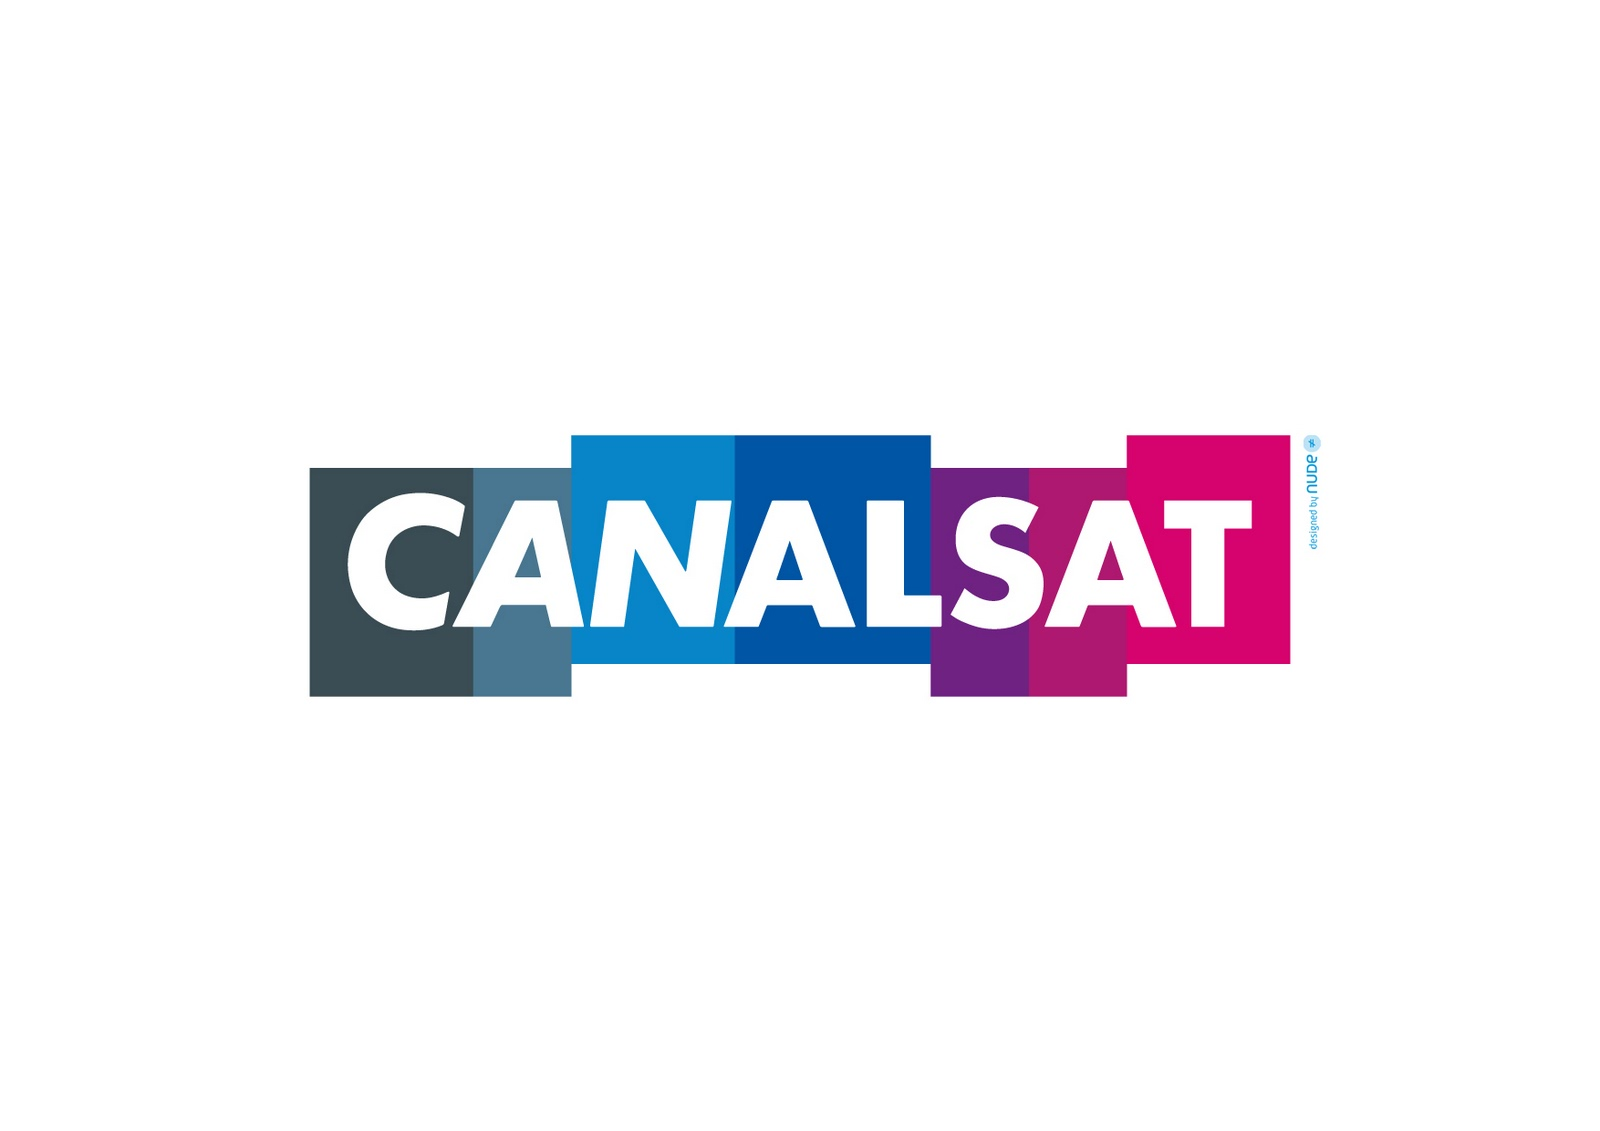 in the box communiqu de presse l 39 agence parisienne nude signe le nouveau logo canalsat. Black Bedroom Furniture Sets. Home Design Ideas